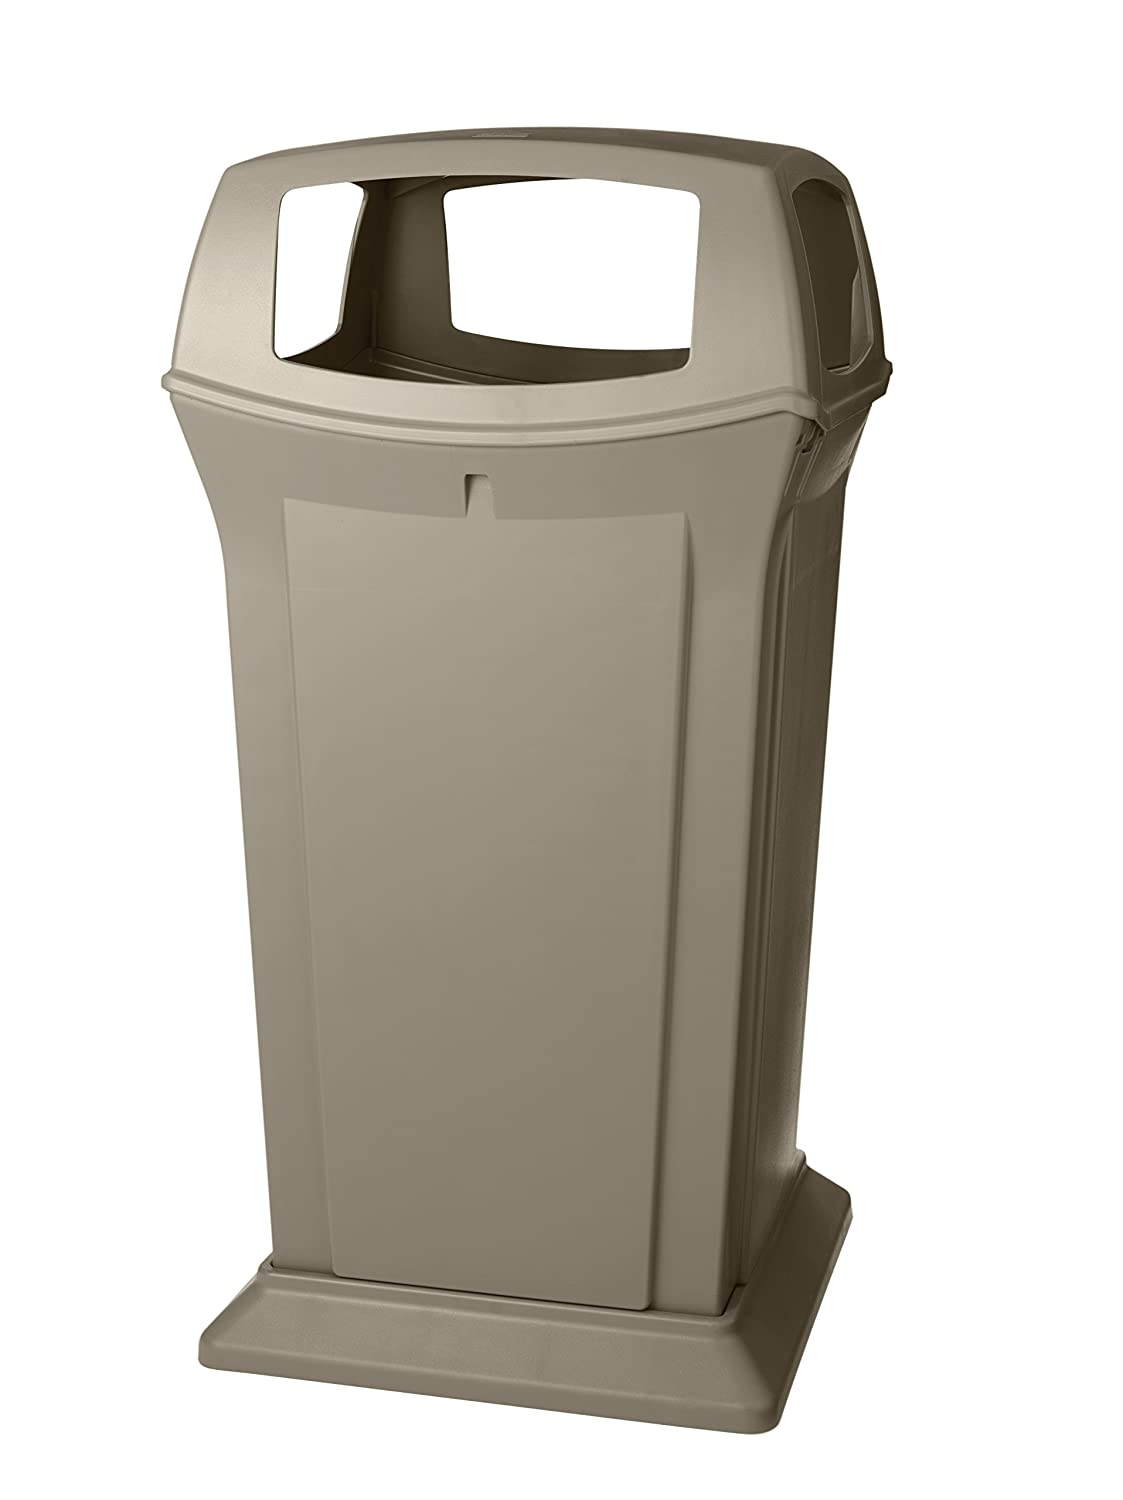 35 Gallon Trash Can Waste Management Waste Management Trash Can